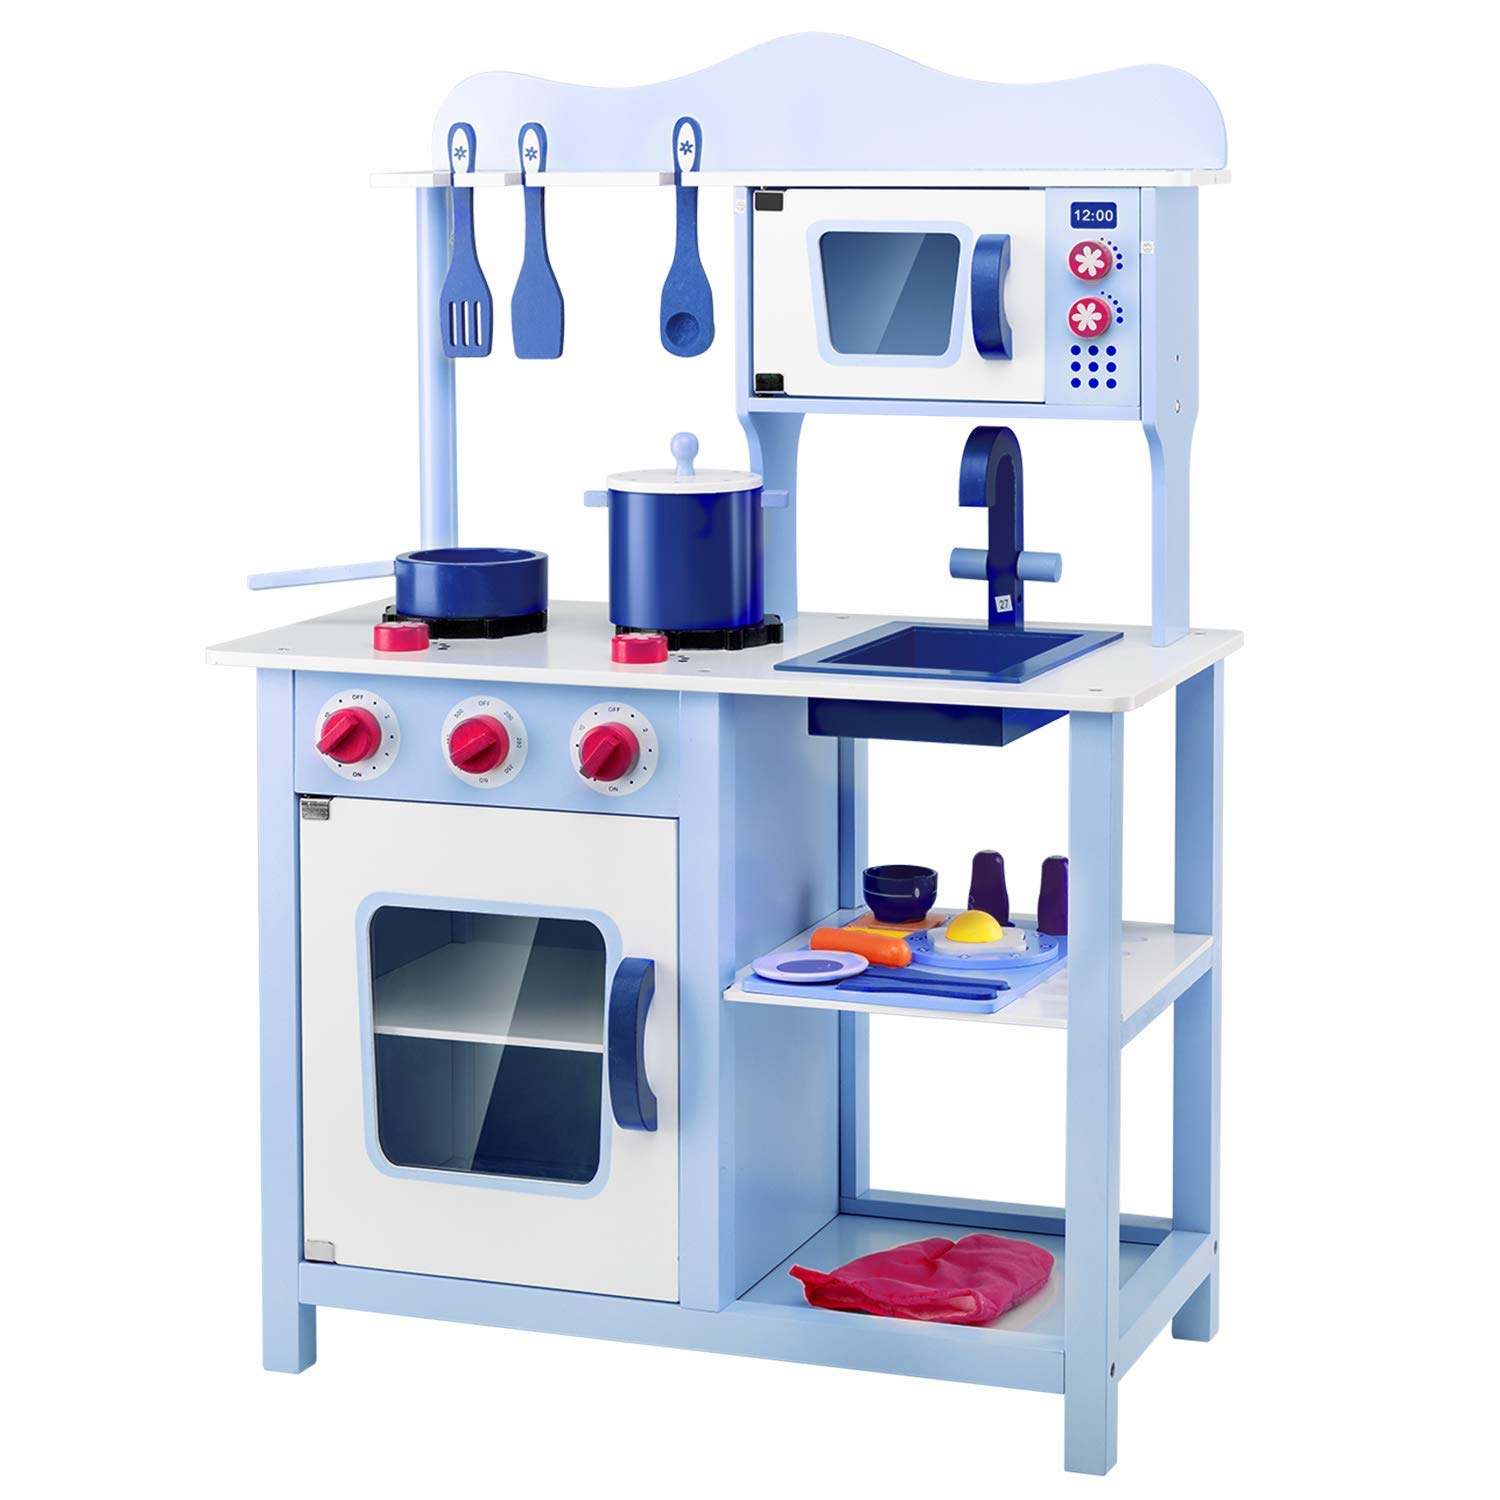 Lauraland Play Kitchen Set for Children, Wooden Pretend Play Kitchen Cooking Toy Set with Cookware Accessories, Vintage Toy Kitchen Set for Toddlers, Blue